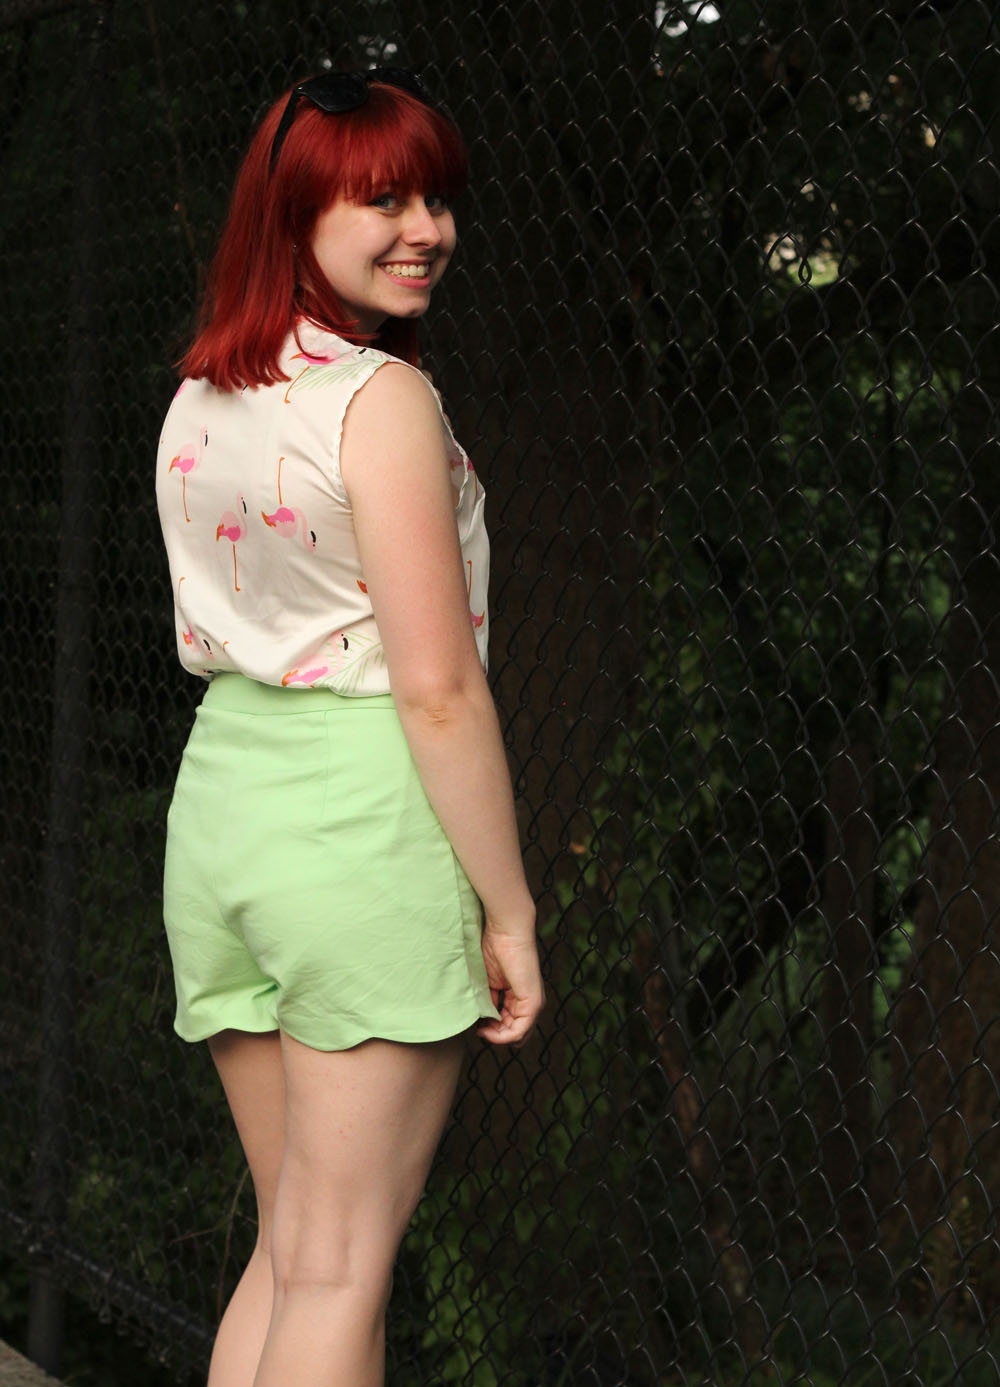 Back Outfit View Light Green Shorts Novelty Print Top Red Hair